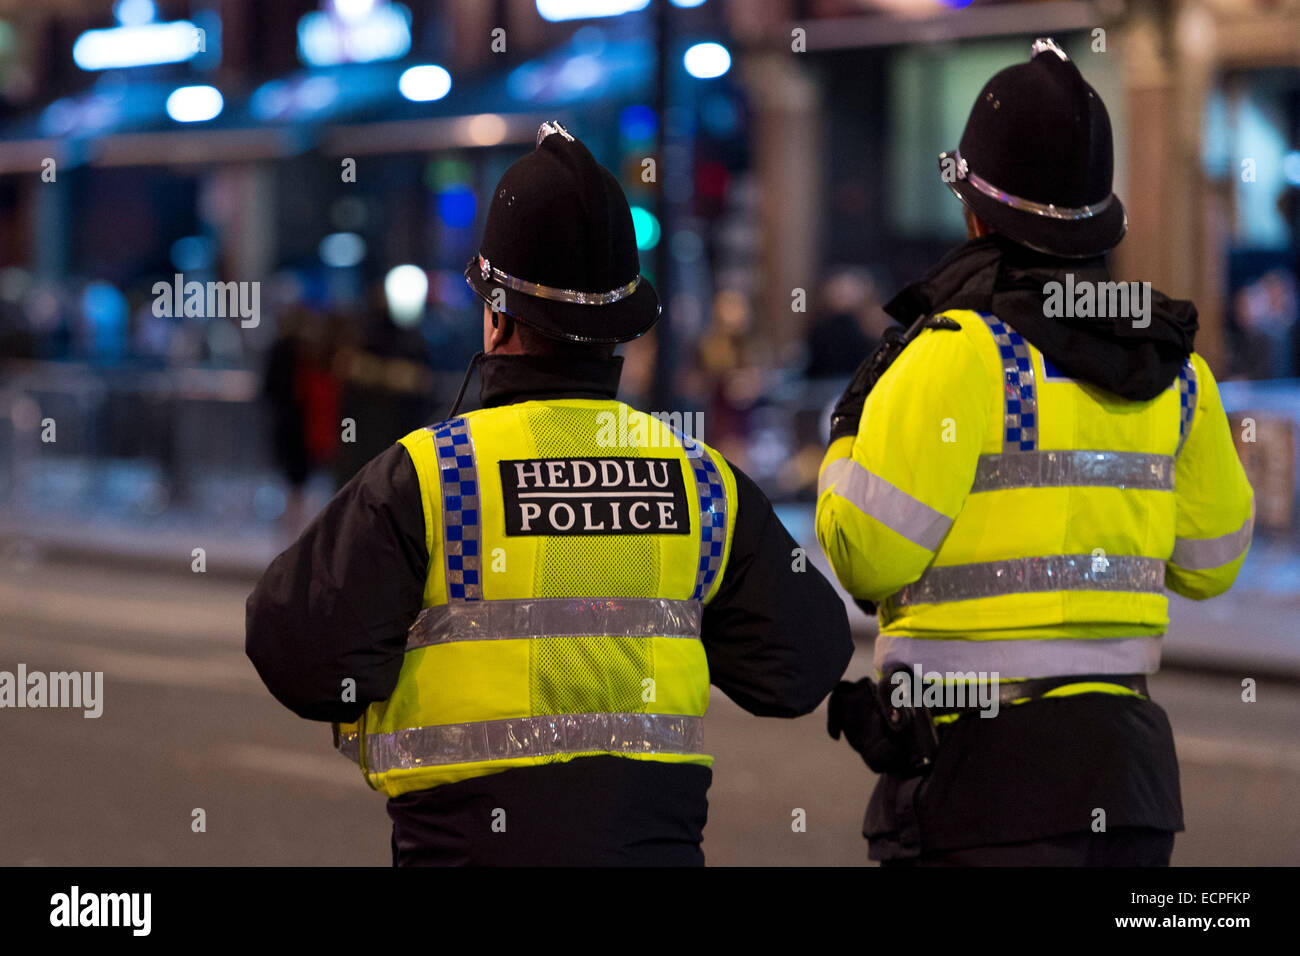 Police officers on patrol in Cardiff City centre at night. - Stock Image